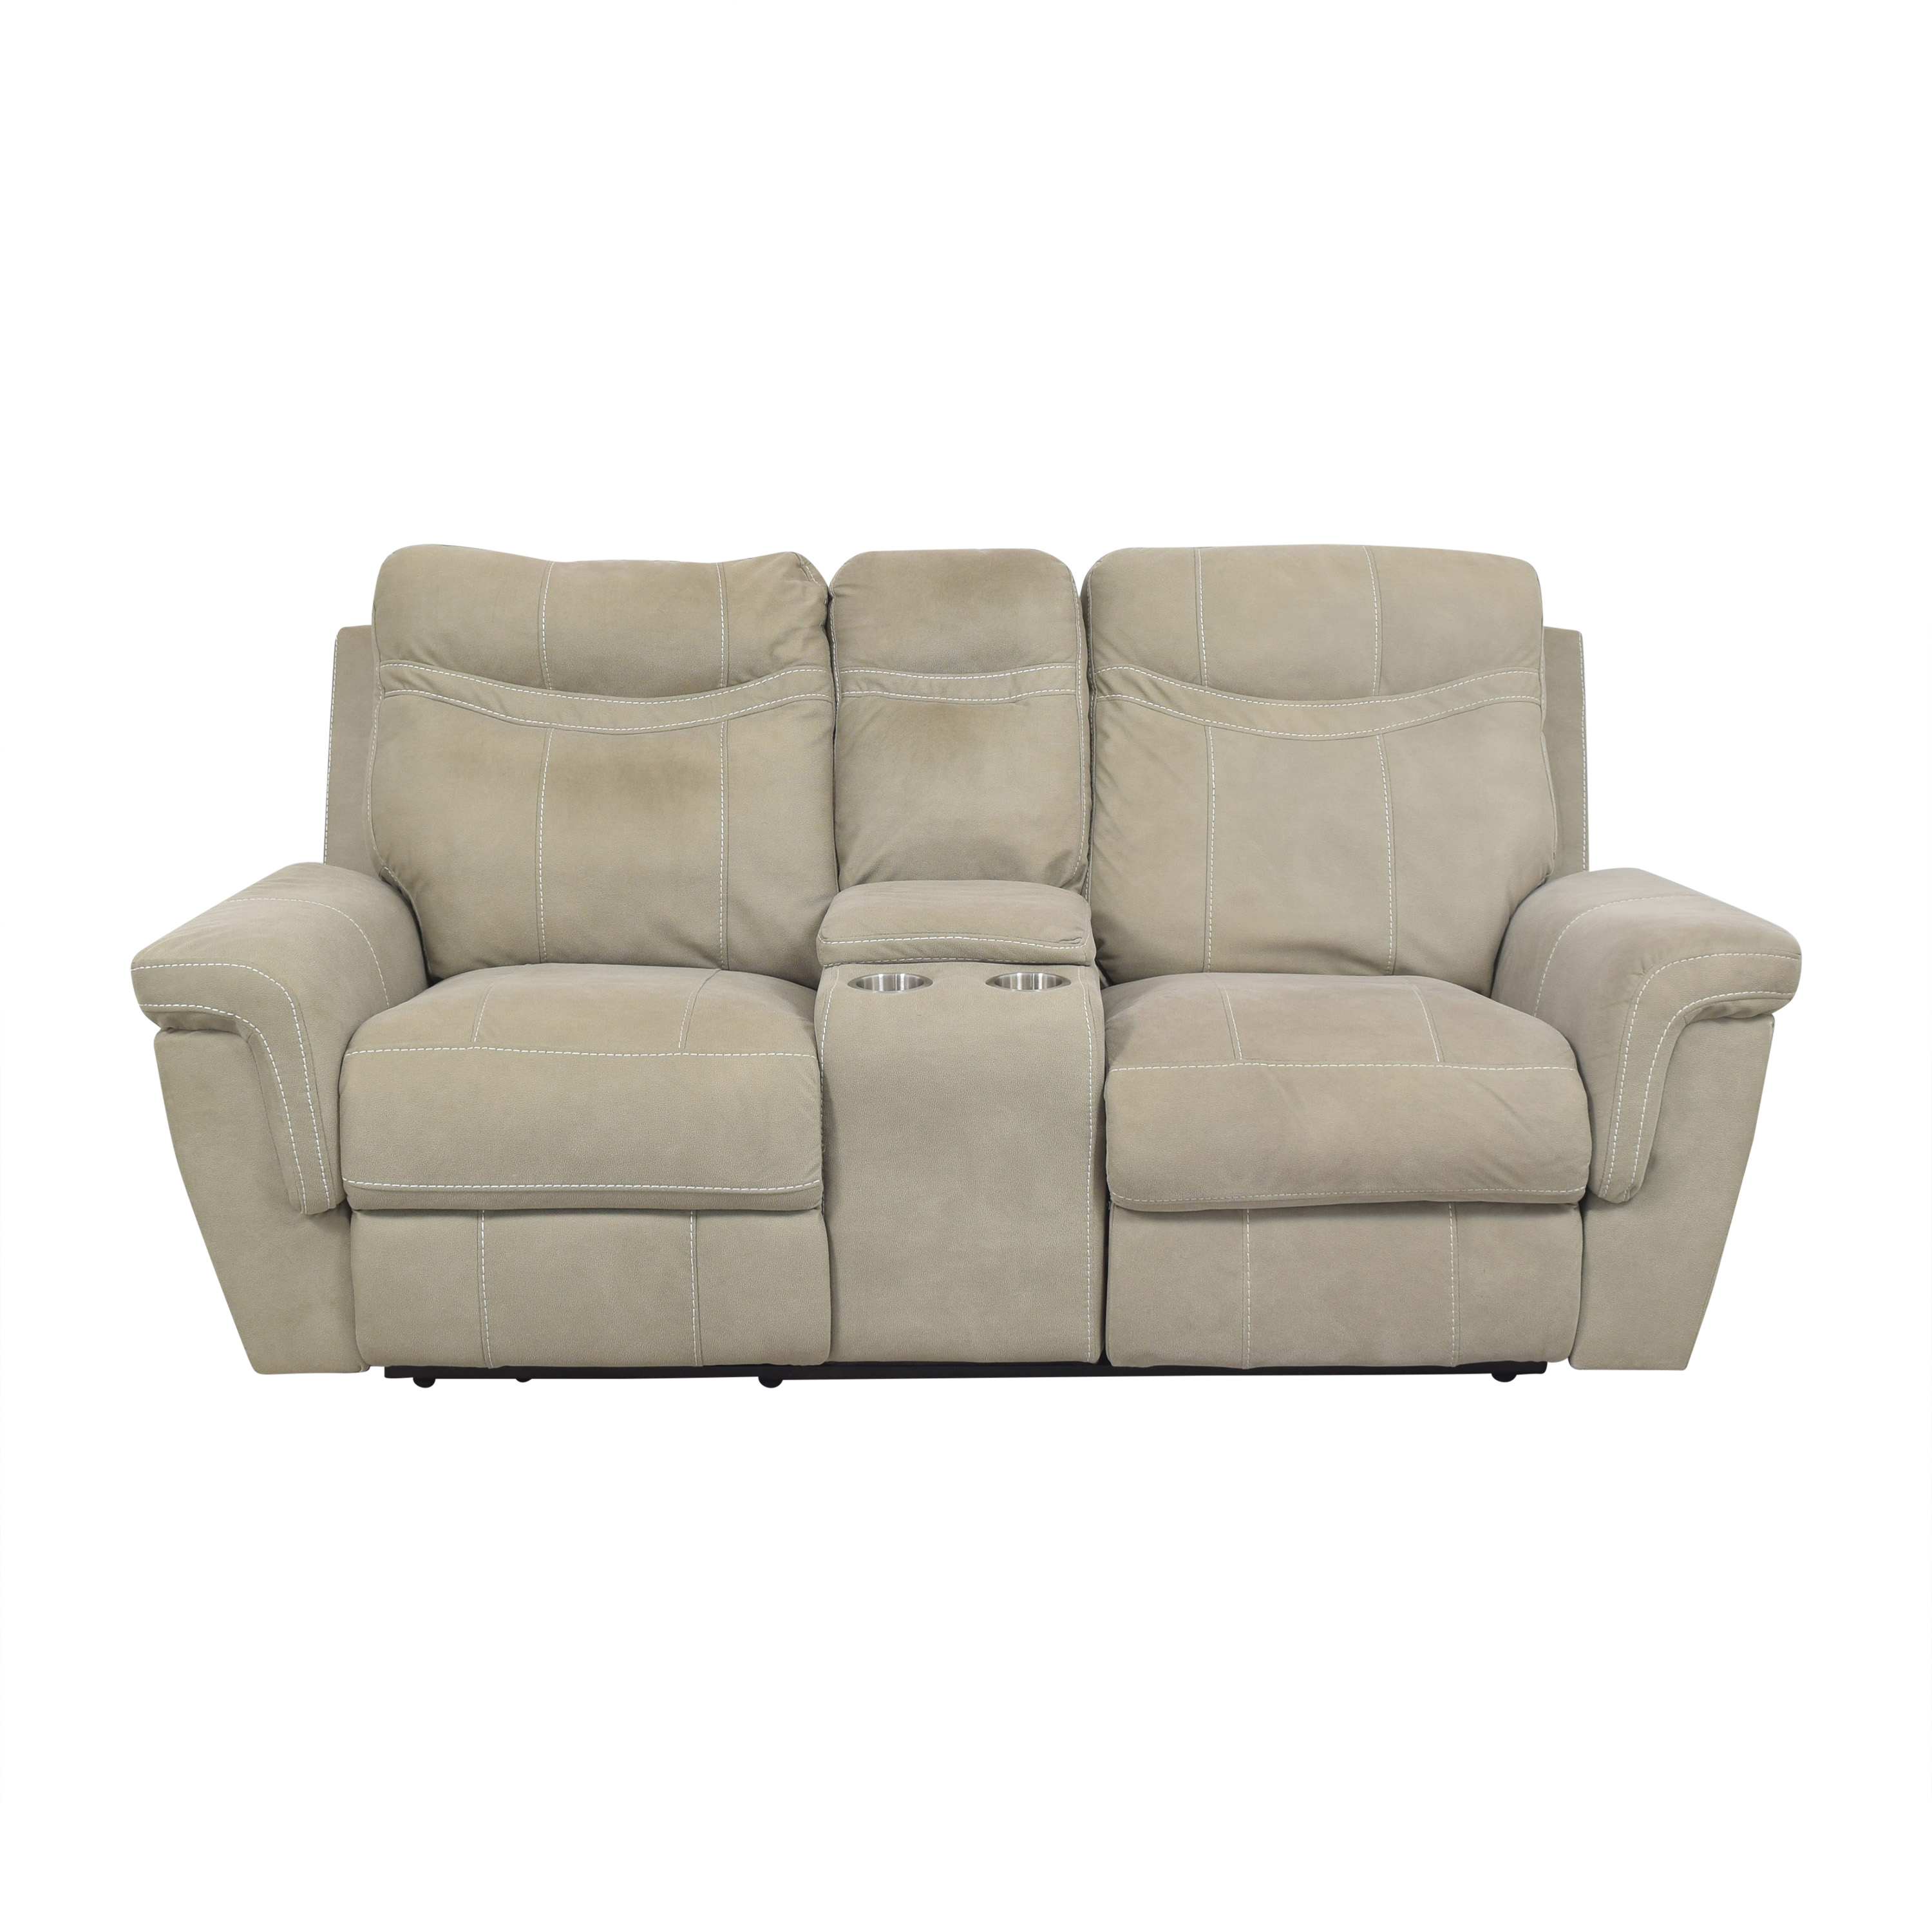 Standard Furniture Standard Furniture Boardwalk Power Reclining Sofa nyc